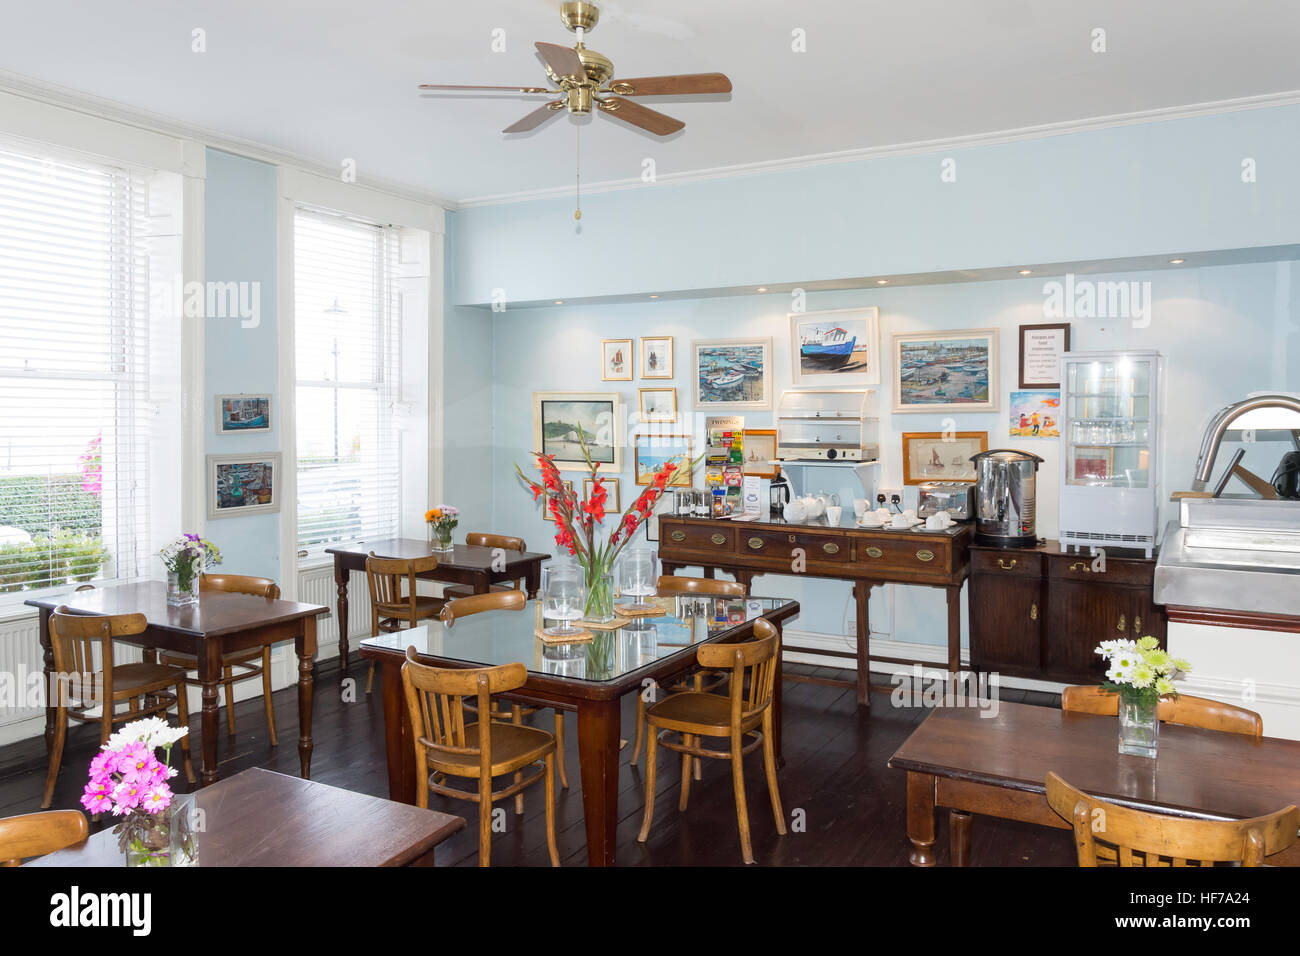 Dining room at The Royal Harbour Hotel, Nelson Crescent, Ramsgate, Isle of Thanet, Kent, England, United Kingdom - Stock Image